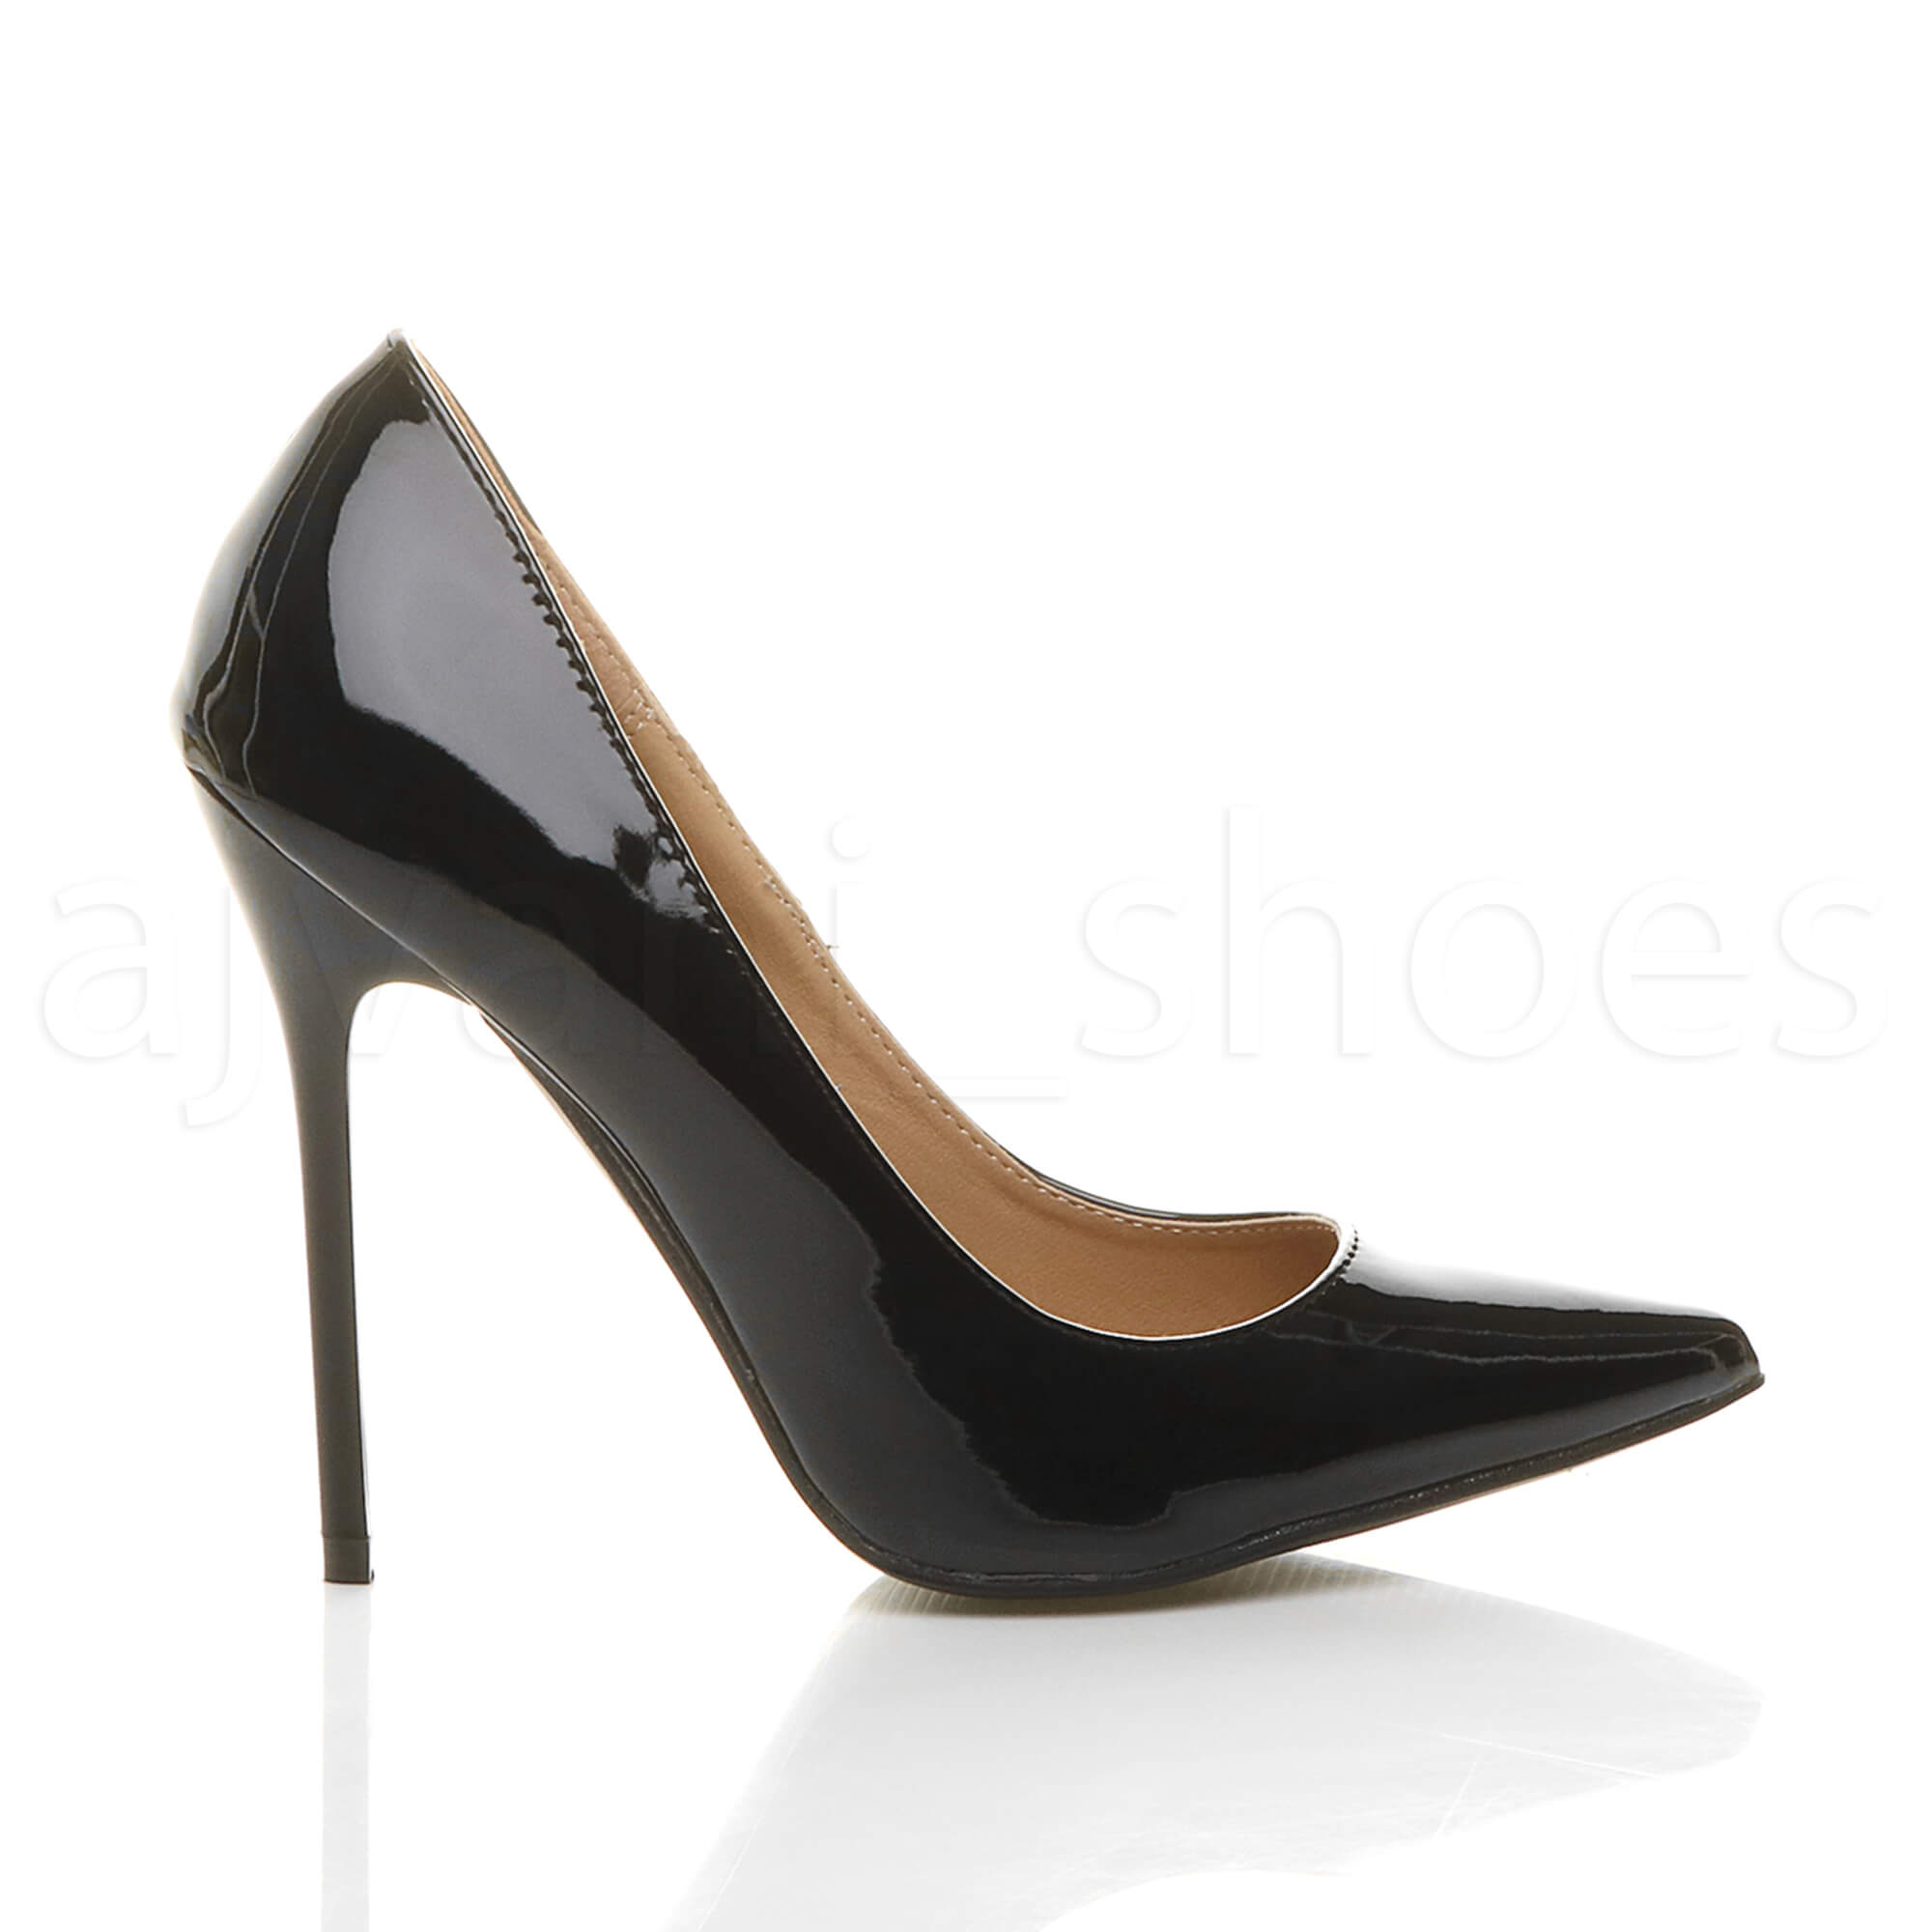 WOMENS-LADIES-HIGH-HEEL-POINTED-CONTRAST-COURT-SMART-PARTY-WORK-SHOES-PUMPS-SIZE thumbnail 19